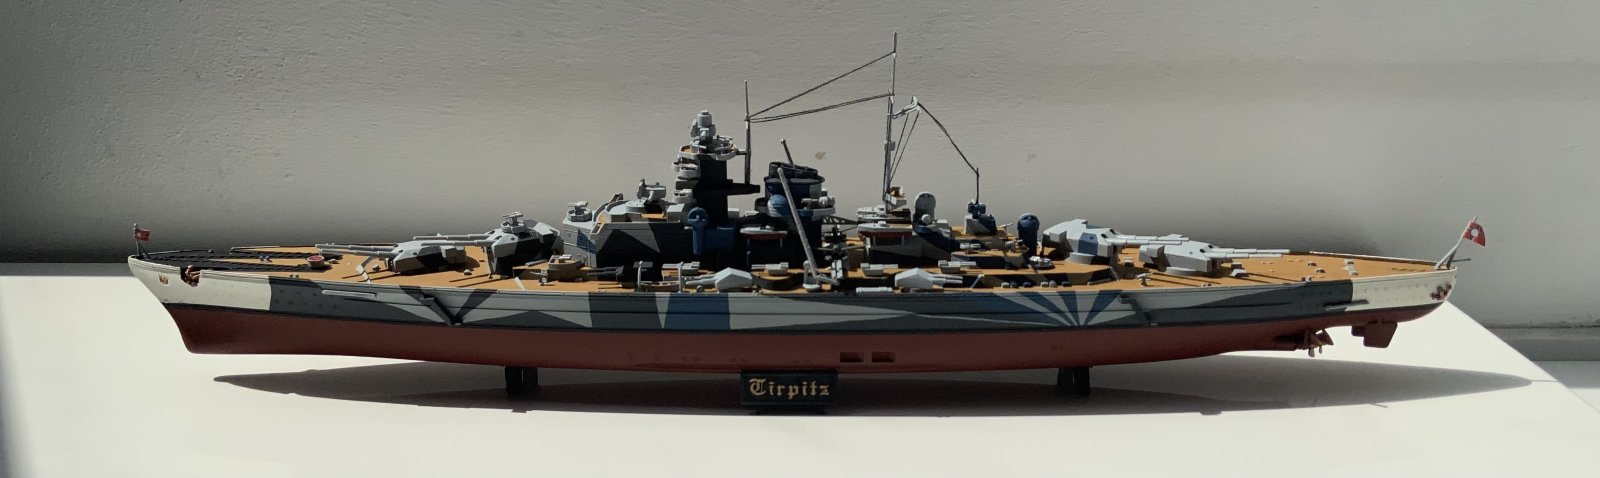 Tirpitz full view (front)